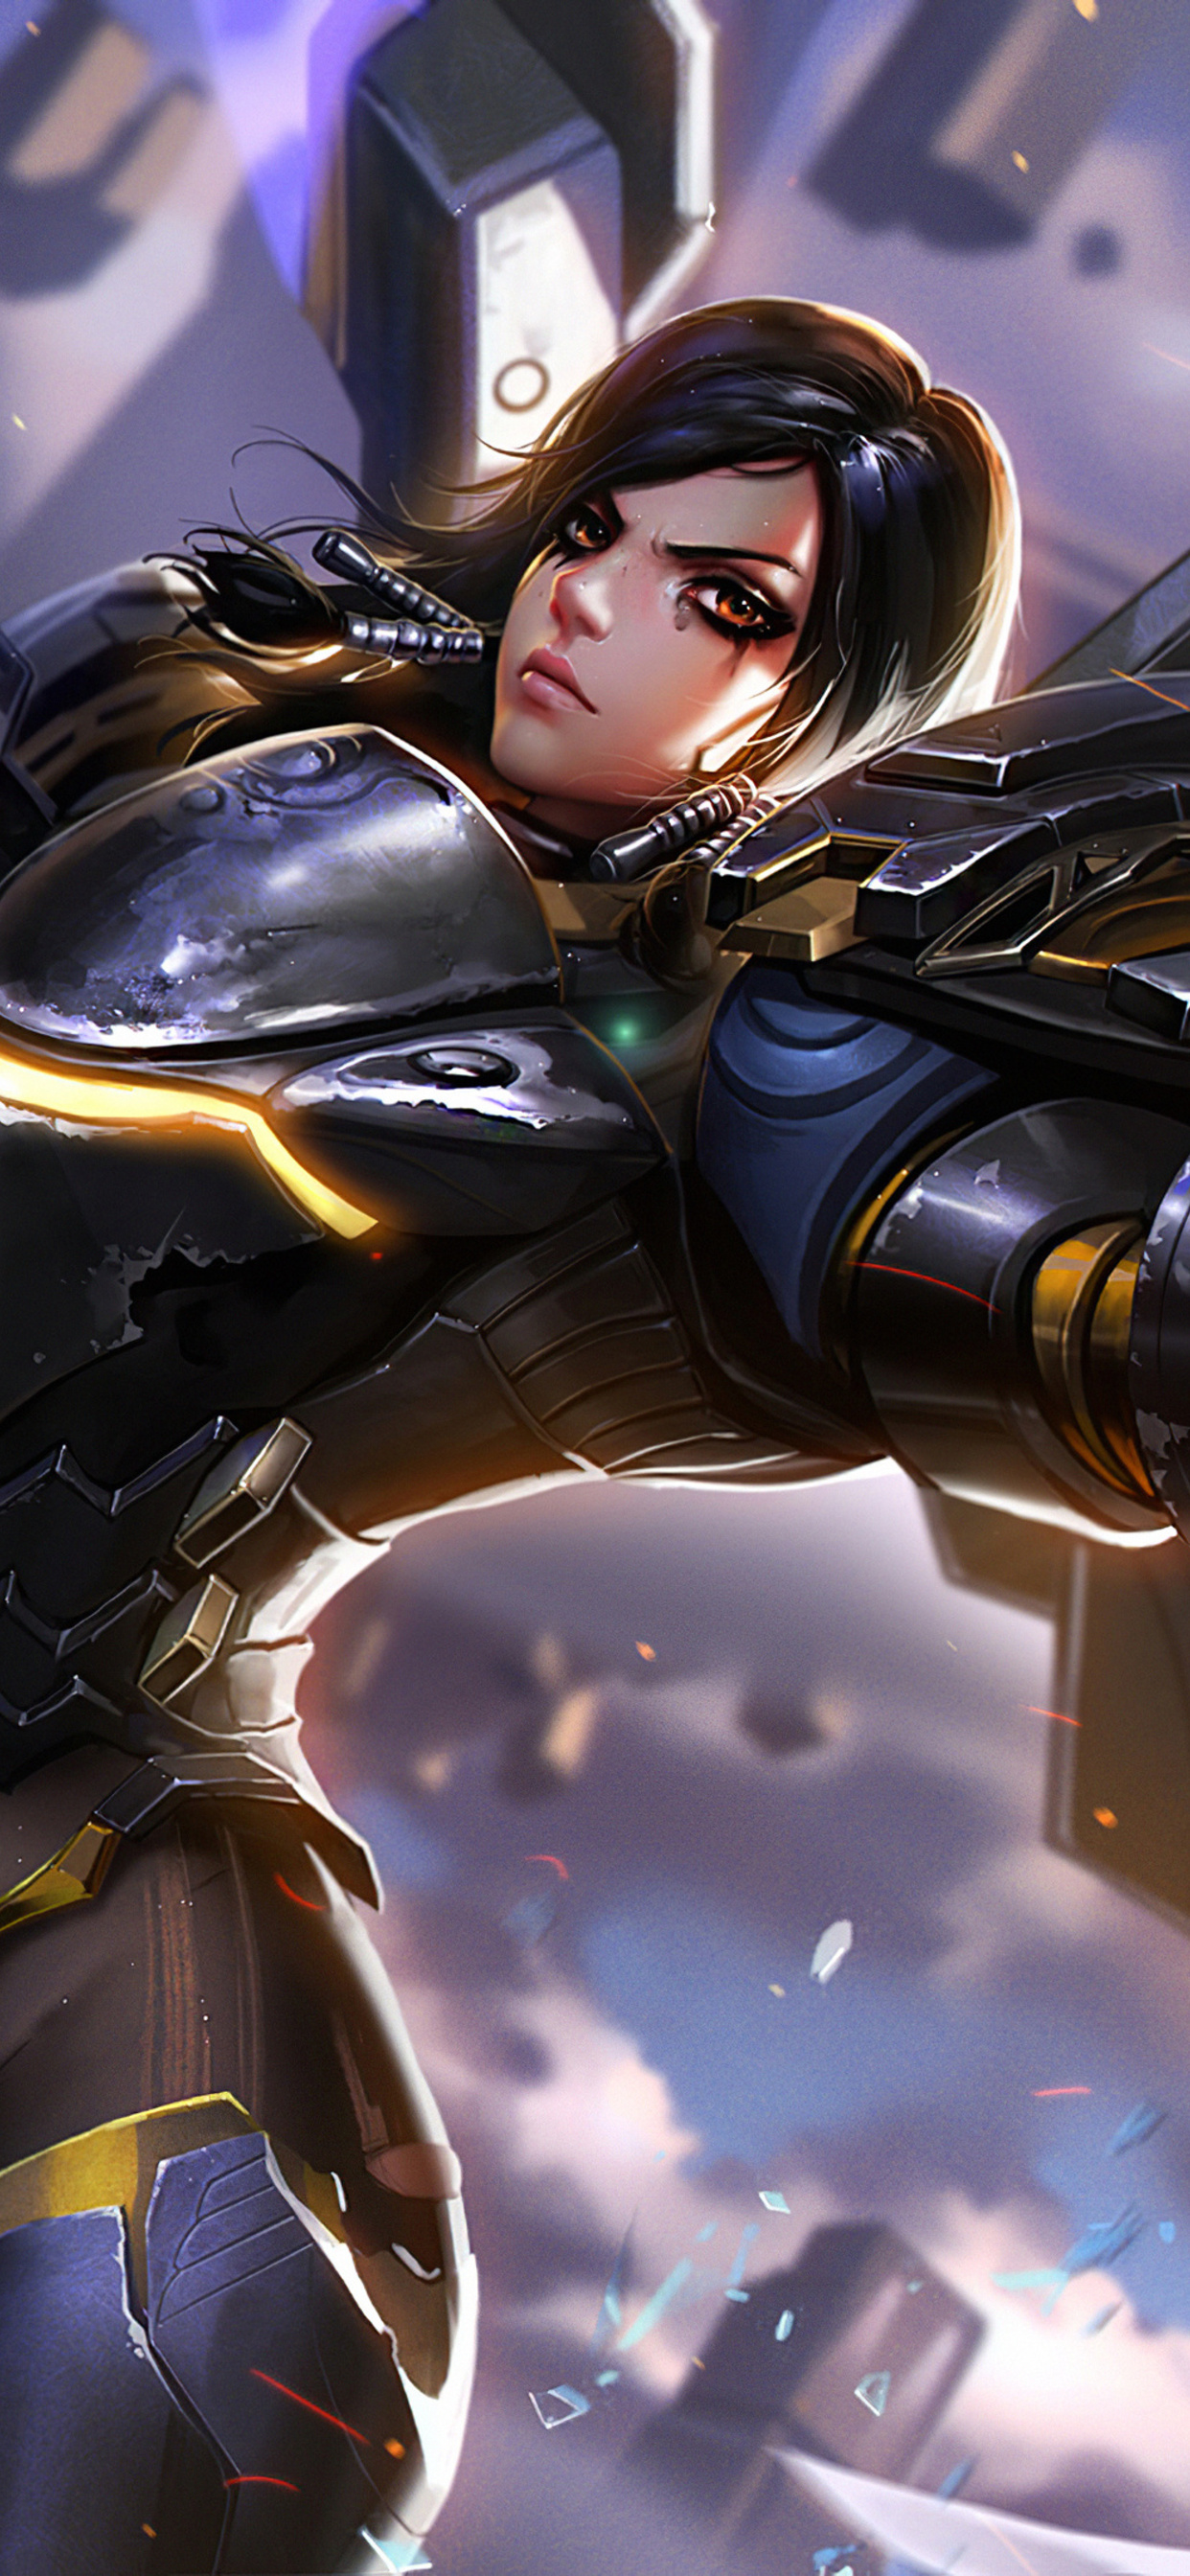 pharah-overwatch-4k-2020-mz.jpg